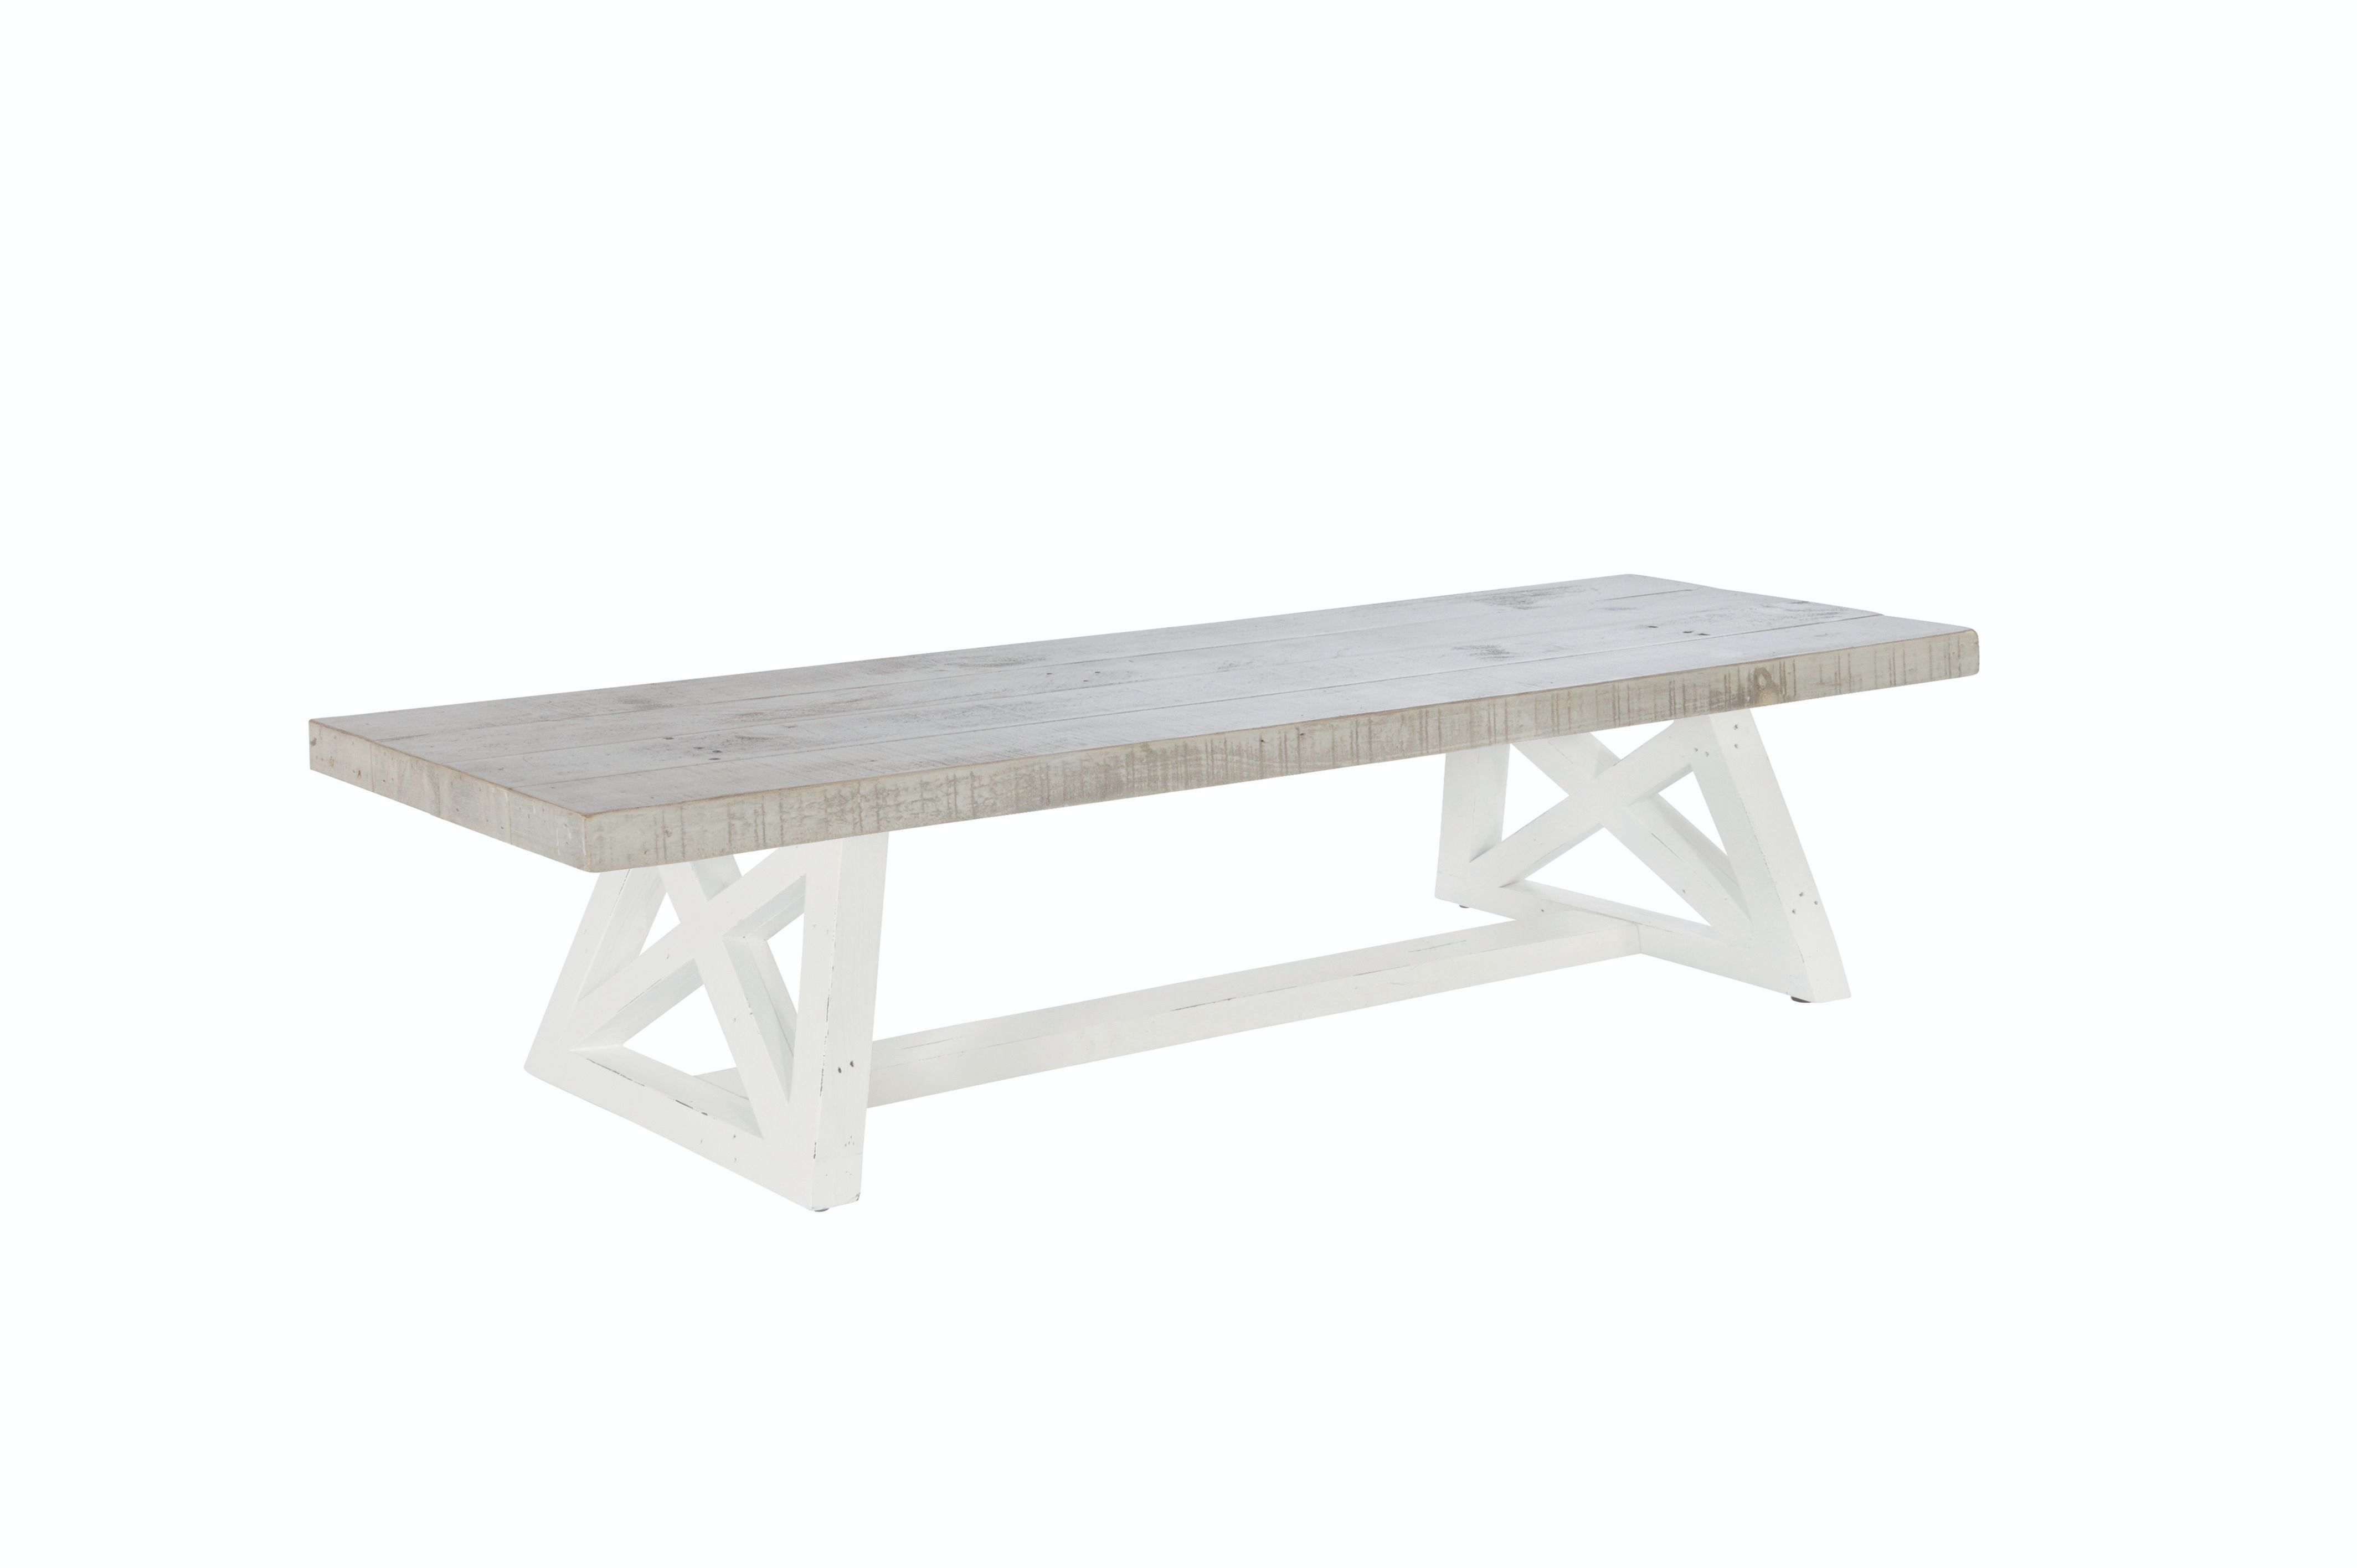 OXFORD Small Bench 1.8m